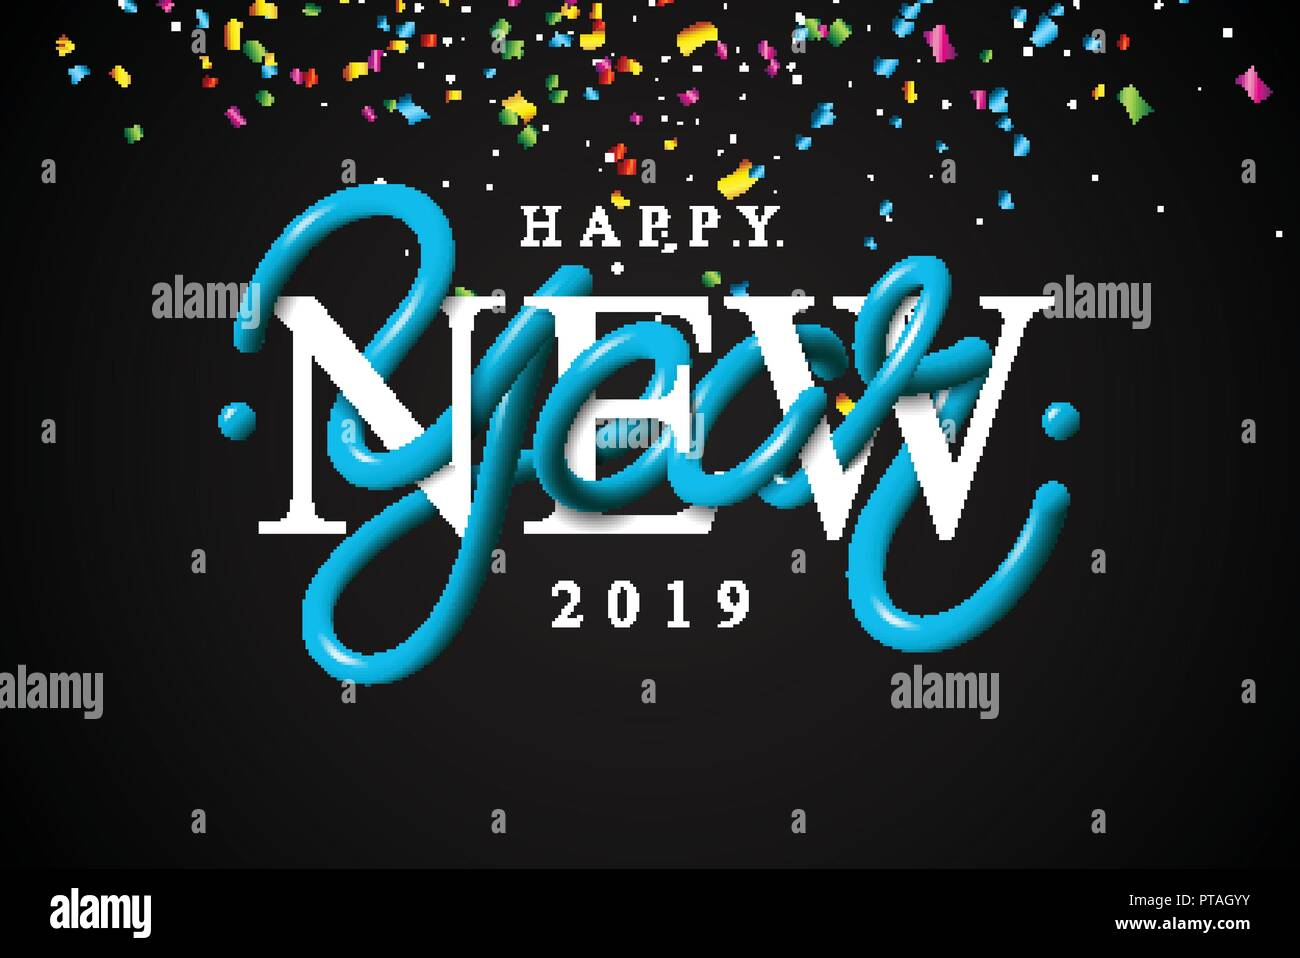 2019 happy new year illustration with 3d typographi lettering and falling confetti on black background holiday design for flyer greeting card banner